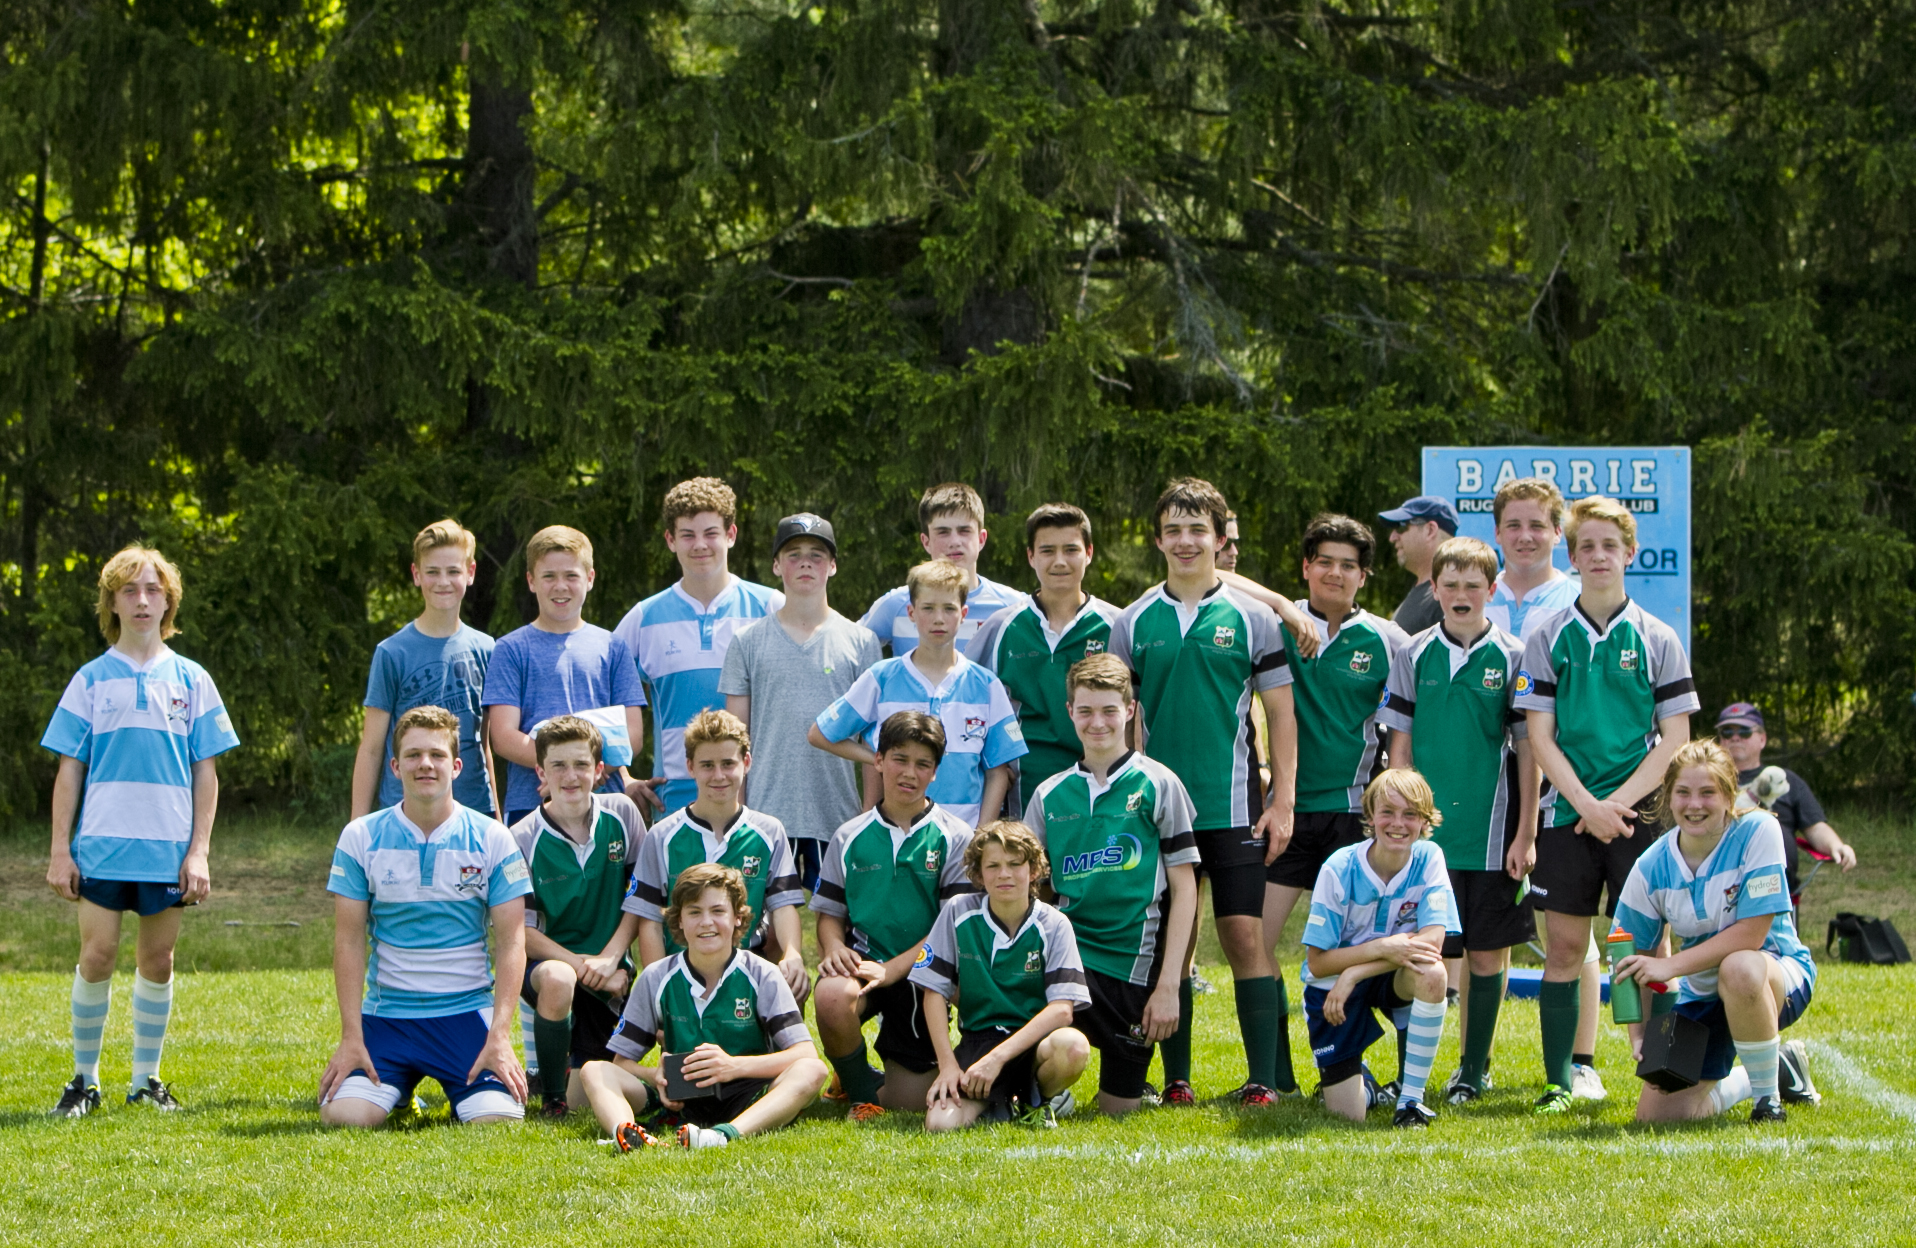 Teams Photo U14 Barrie vs Markham May 28 2016